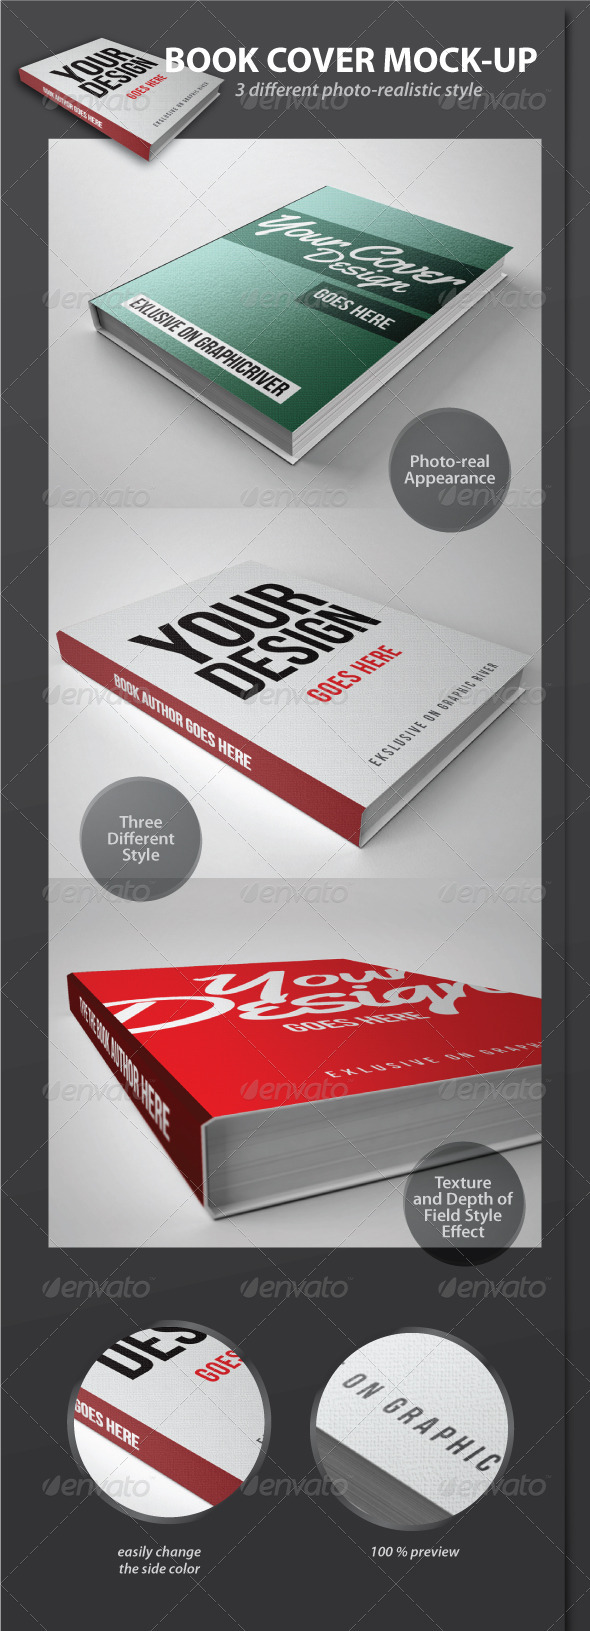 Graphic River Book Cover Mock-Up Pack Graphics -  Product Mock-Ups  Print 1035455